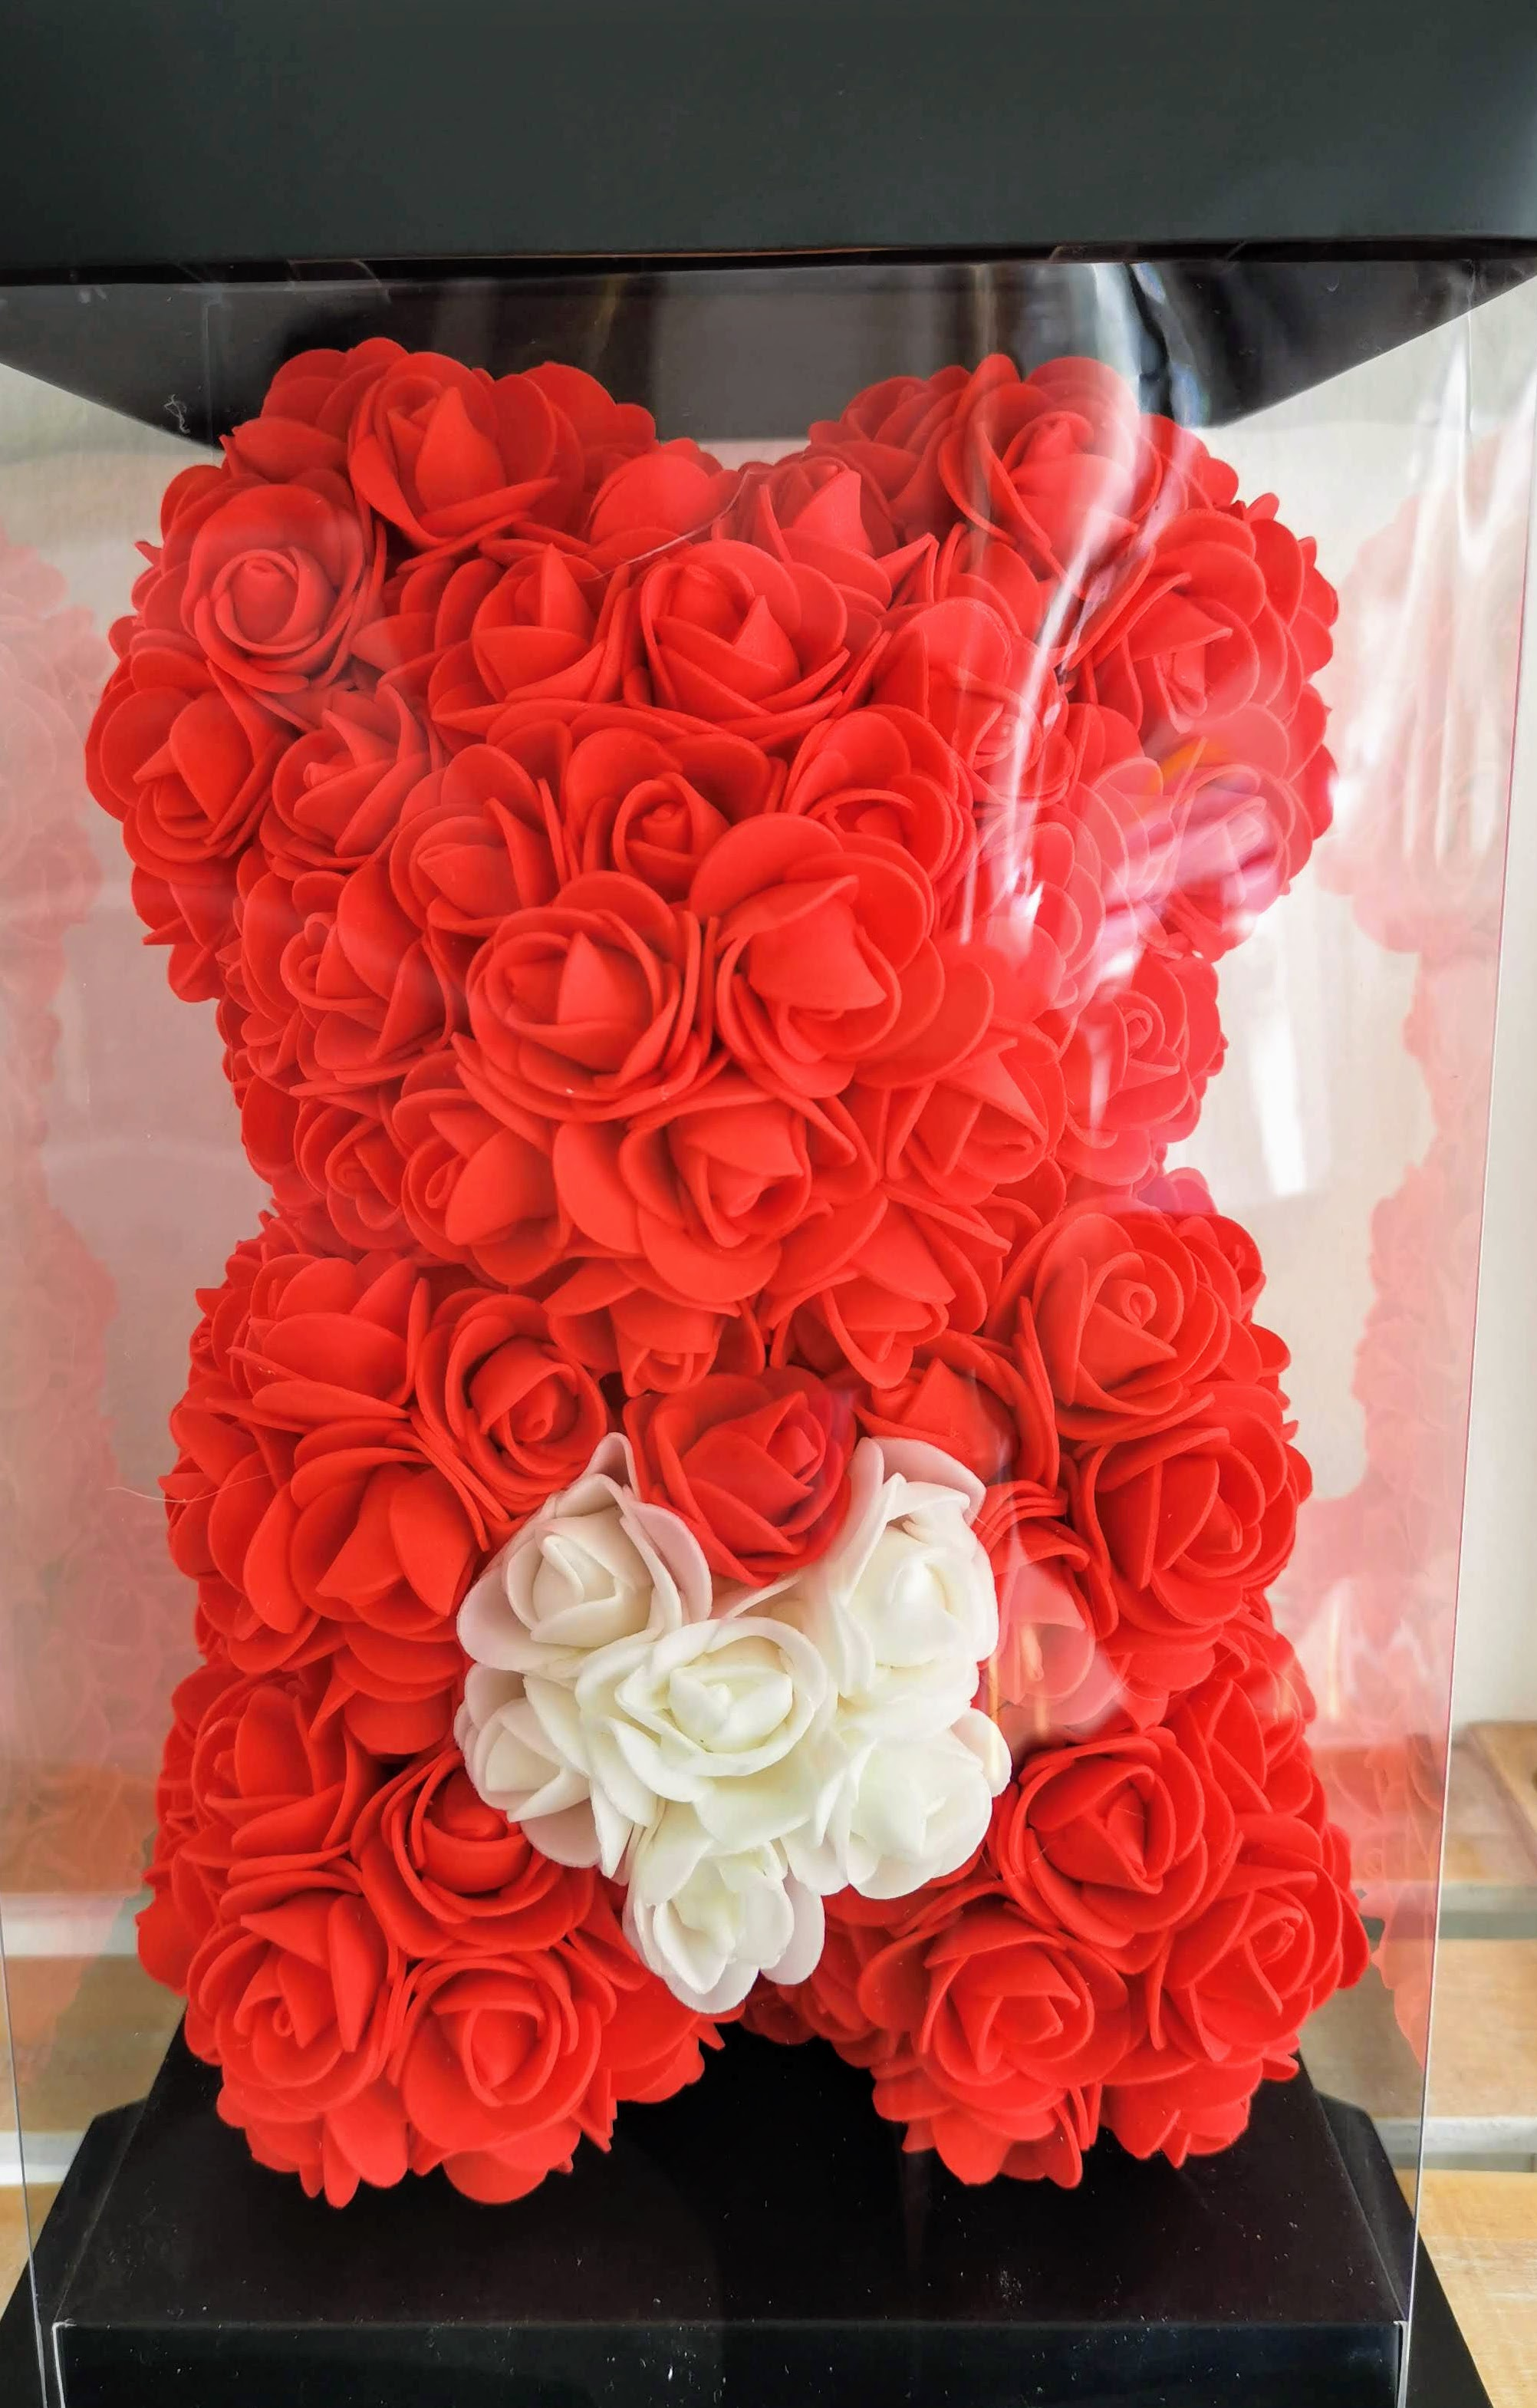 Rose Bear 28cm With Heart - Red